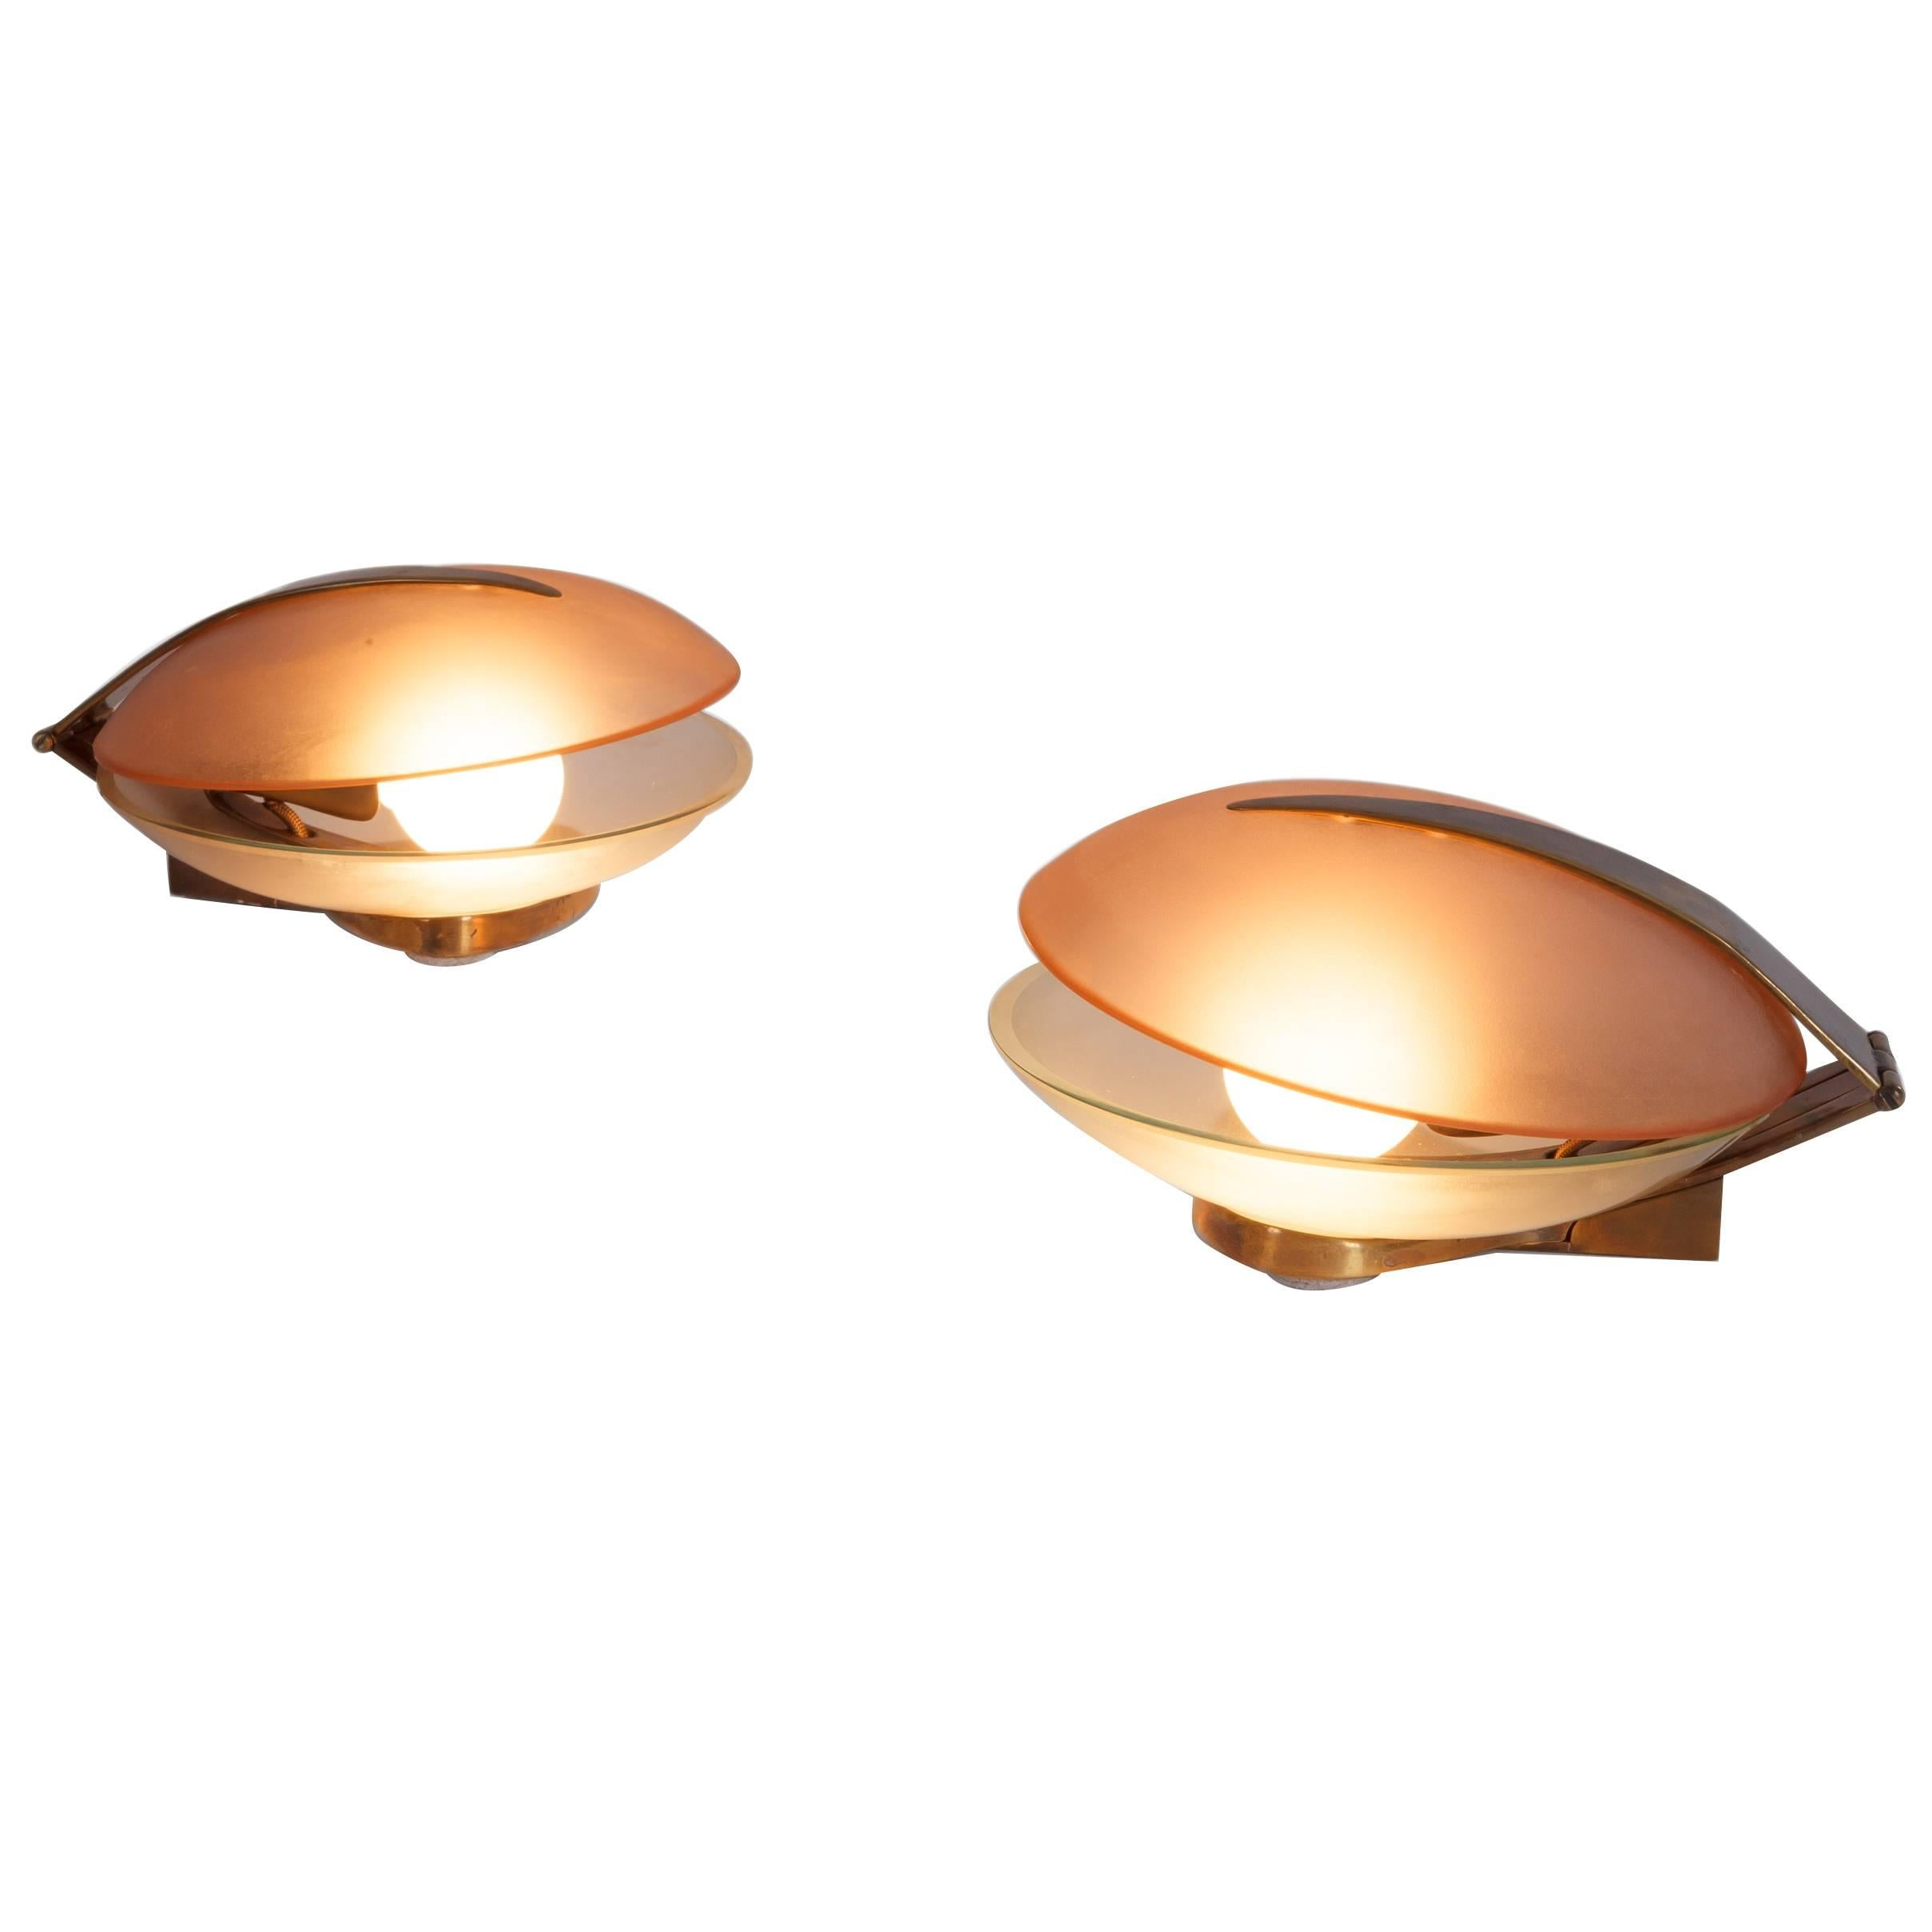 Max Ingrand for Fontana Arte Table Lamps or Sconces